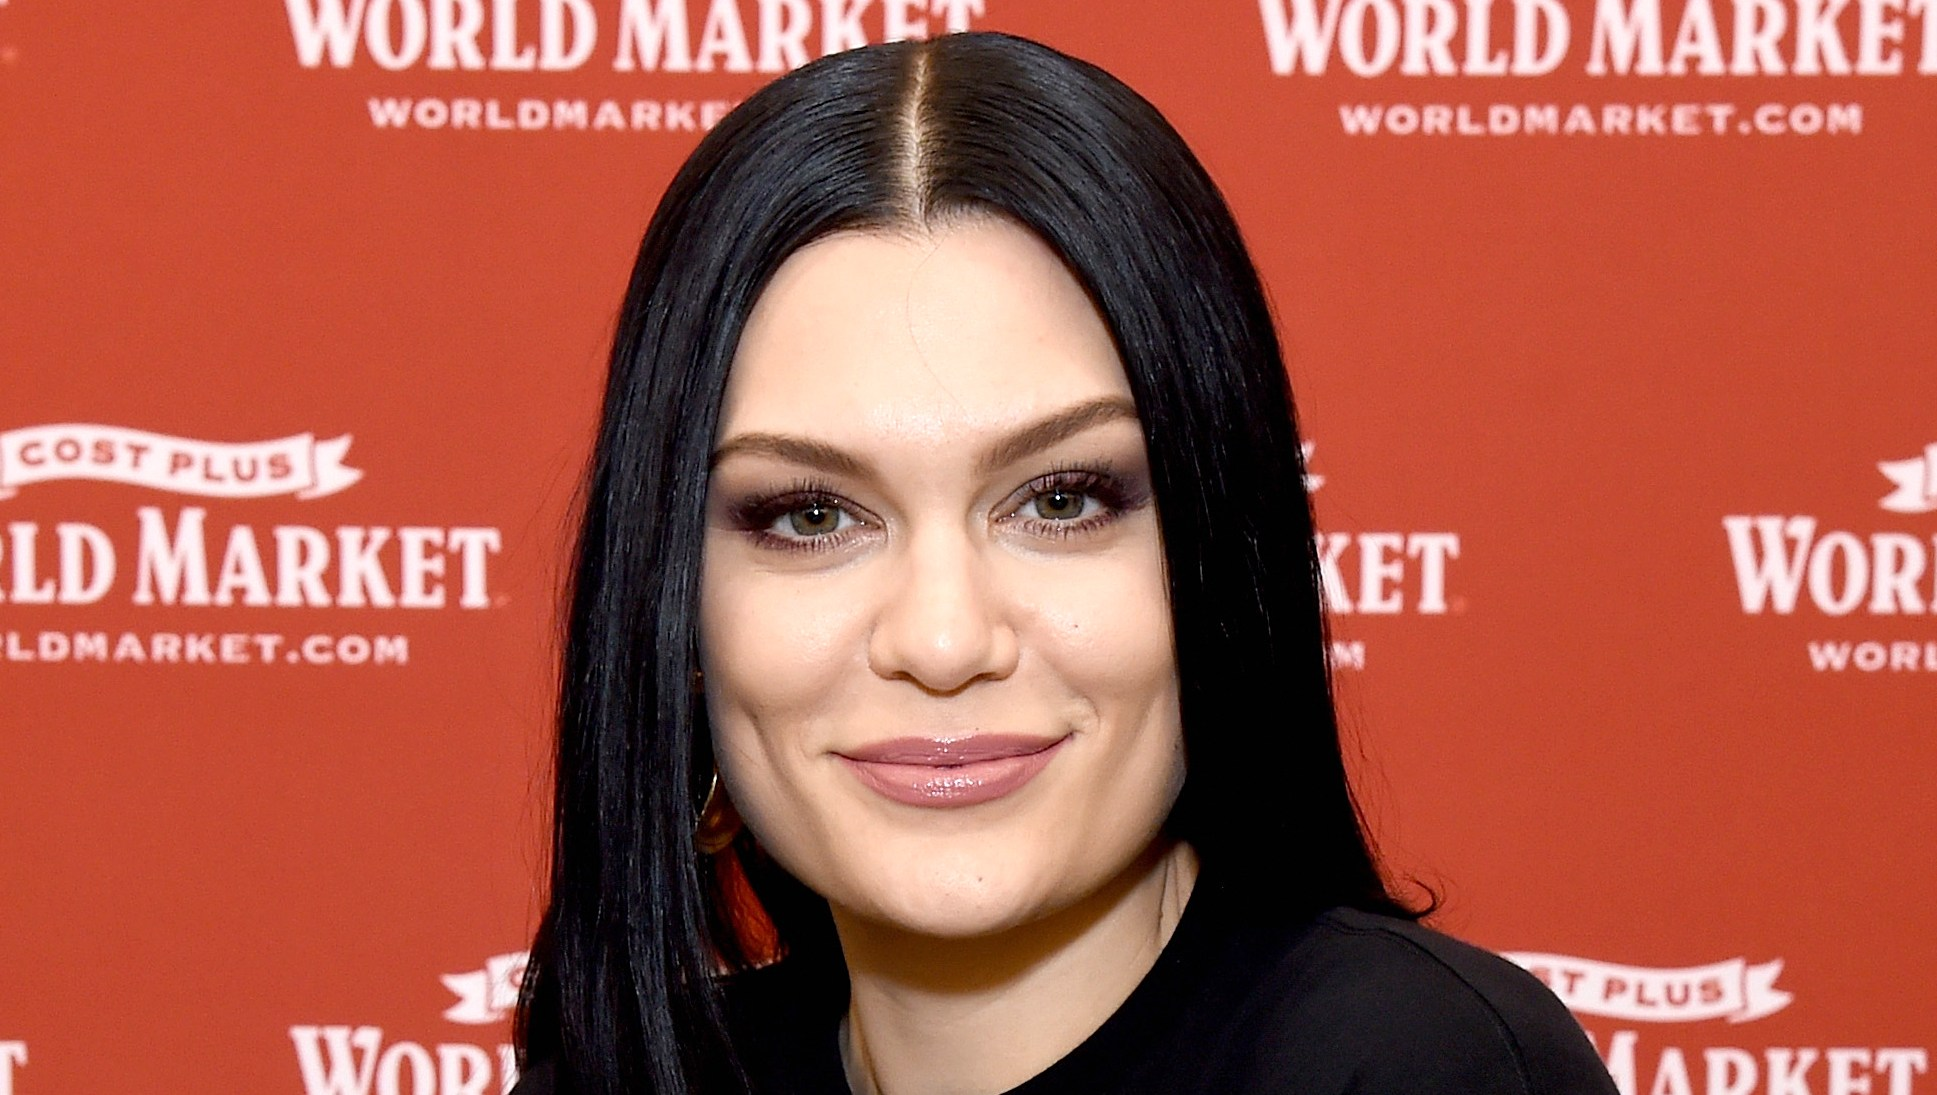 Jessie J Proudly Shows Off Cellulite in Body-Positive Bikini Pic